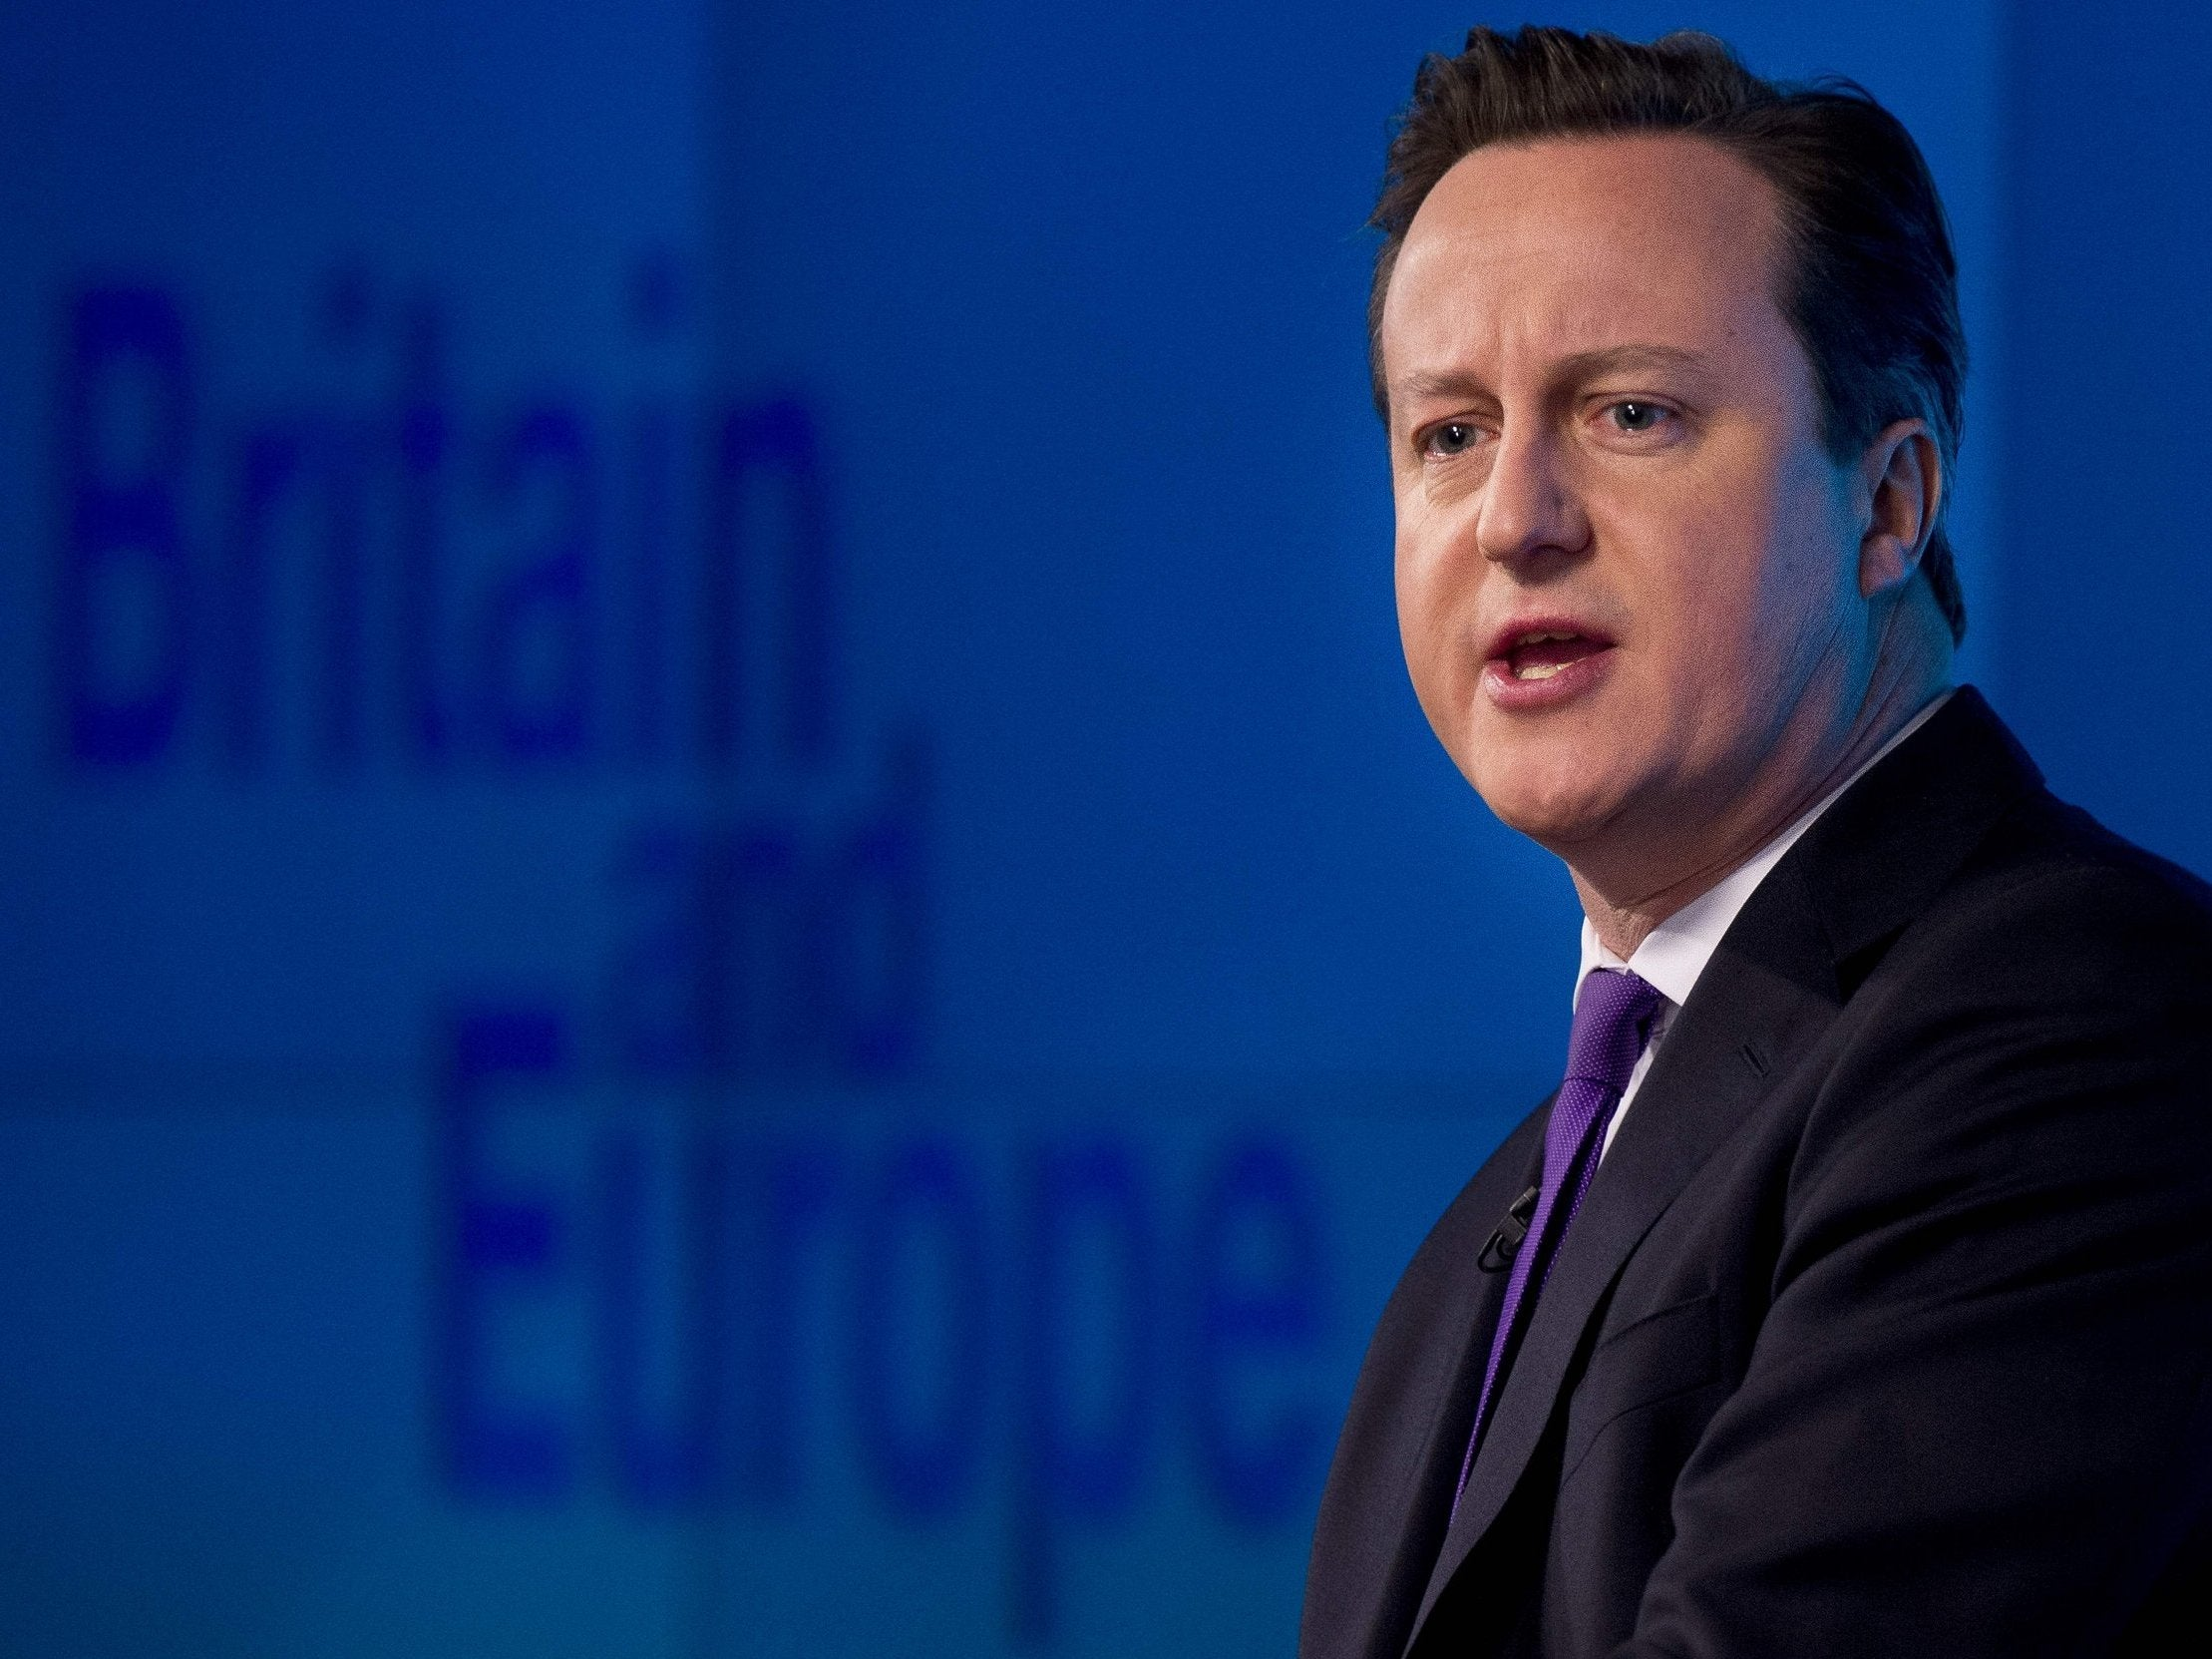 David Cameron says he got 'off his head' on cannabis at Eton